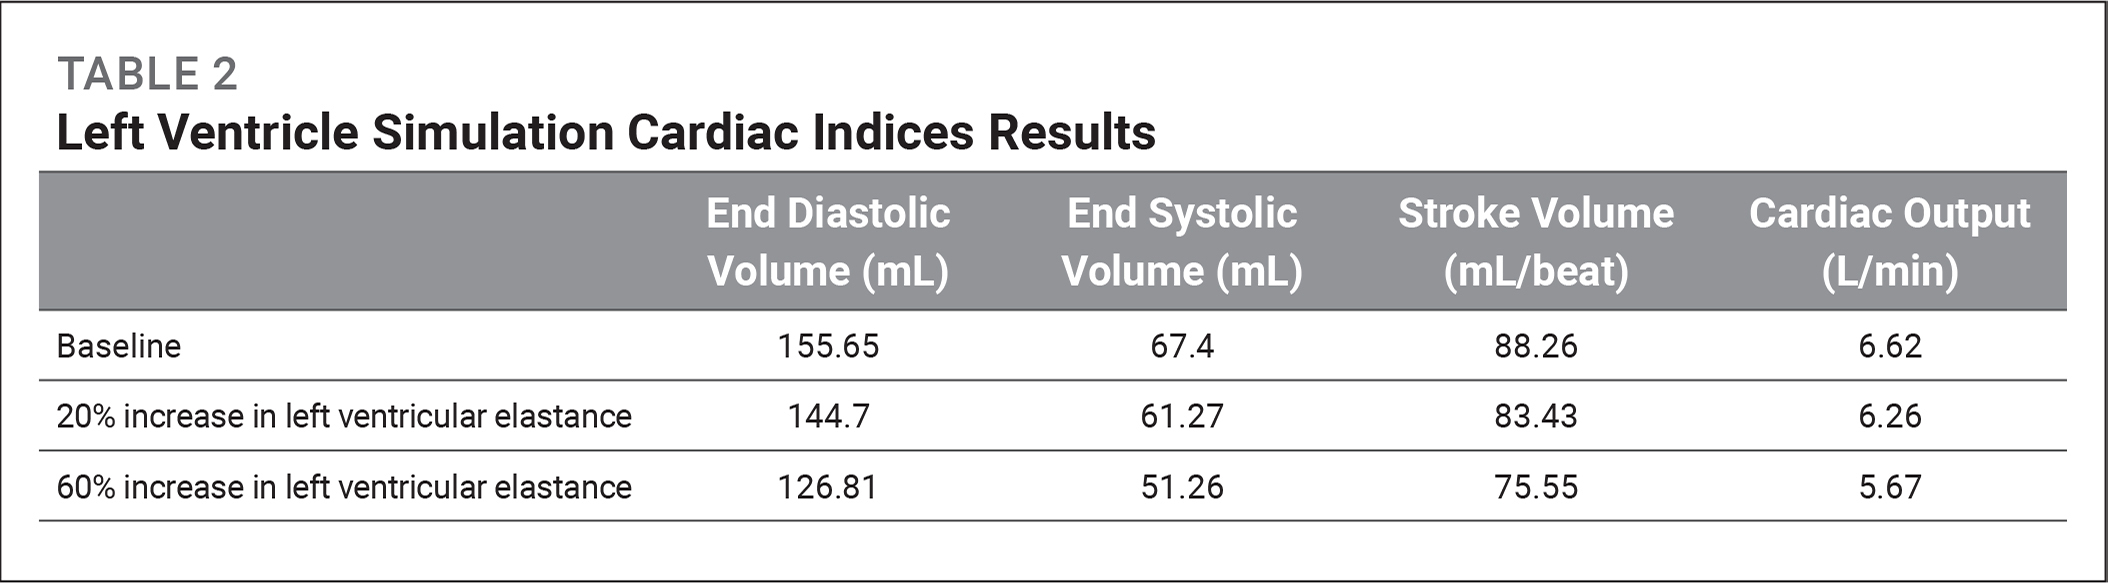 Left Ventricle Simulation Cardiac Indices Results